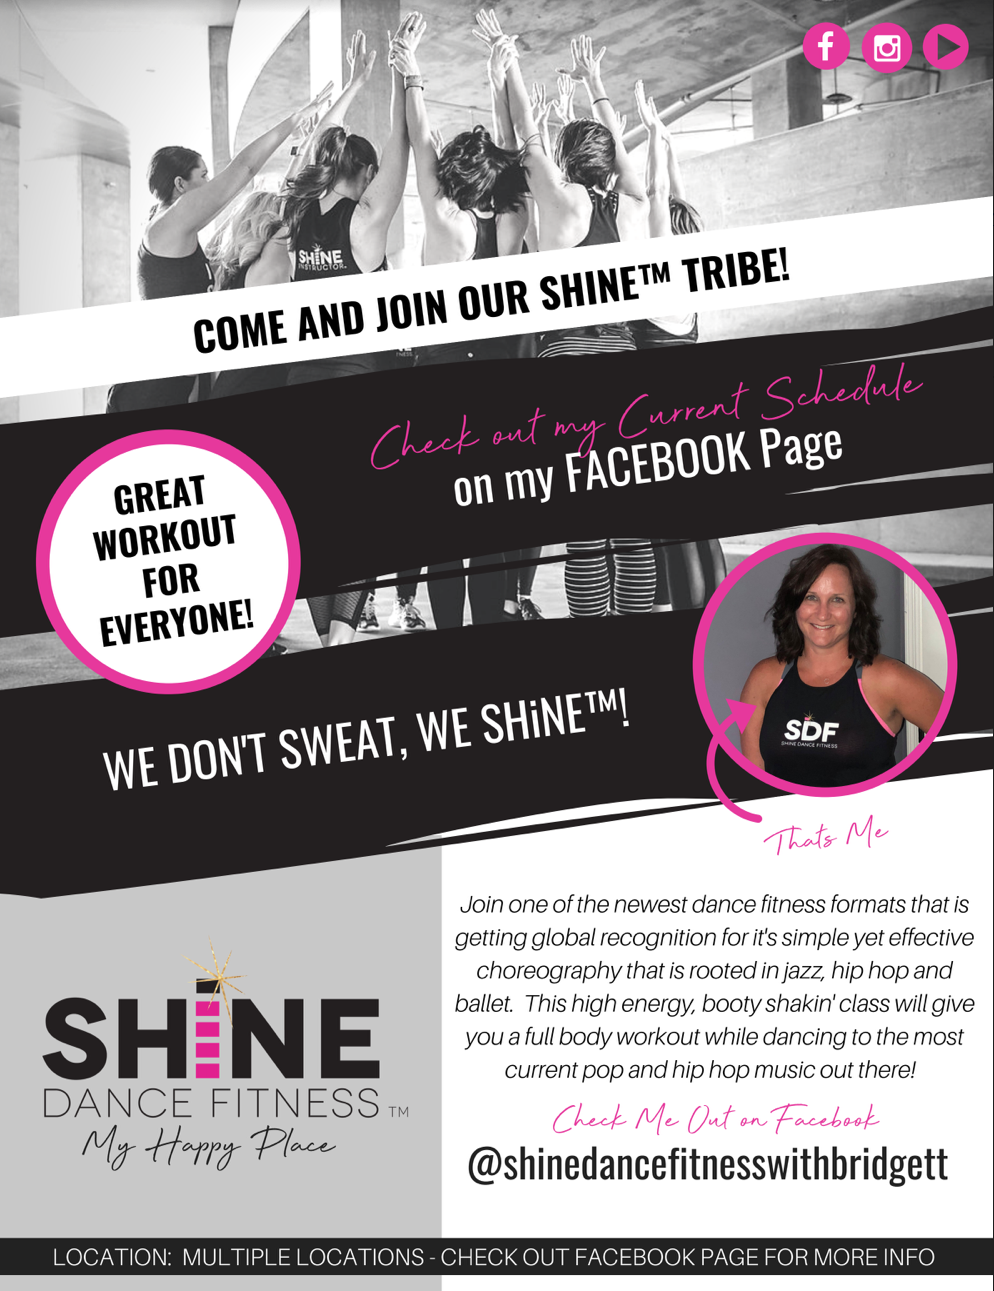 Shine Dance Fitness with Bridgett